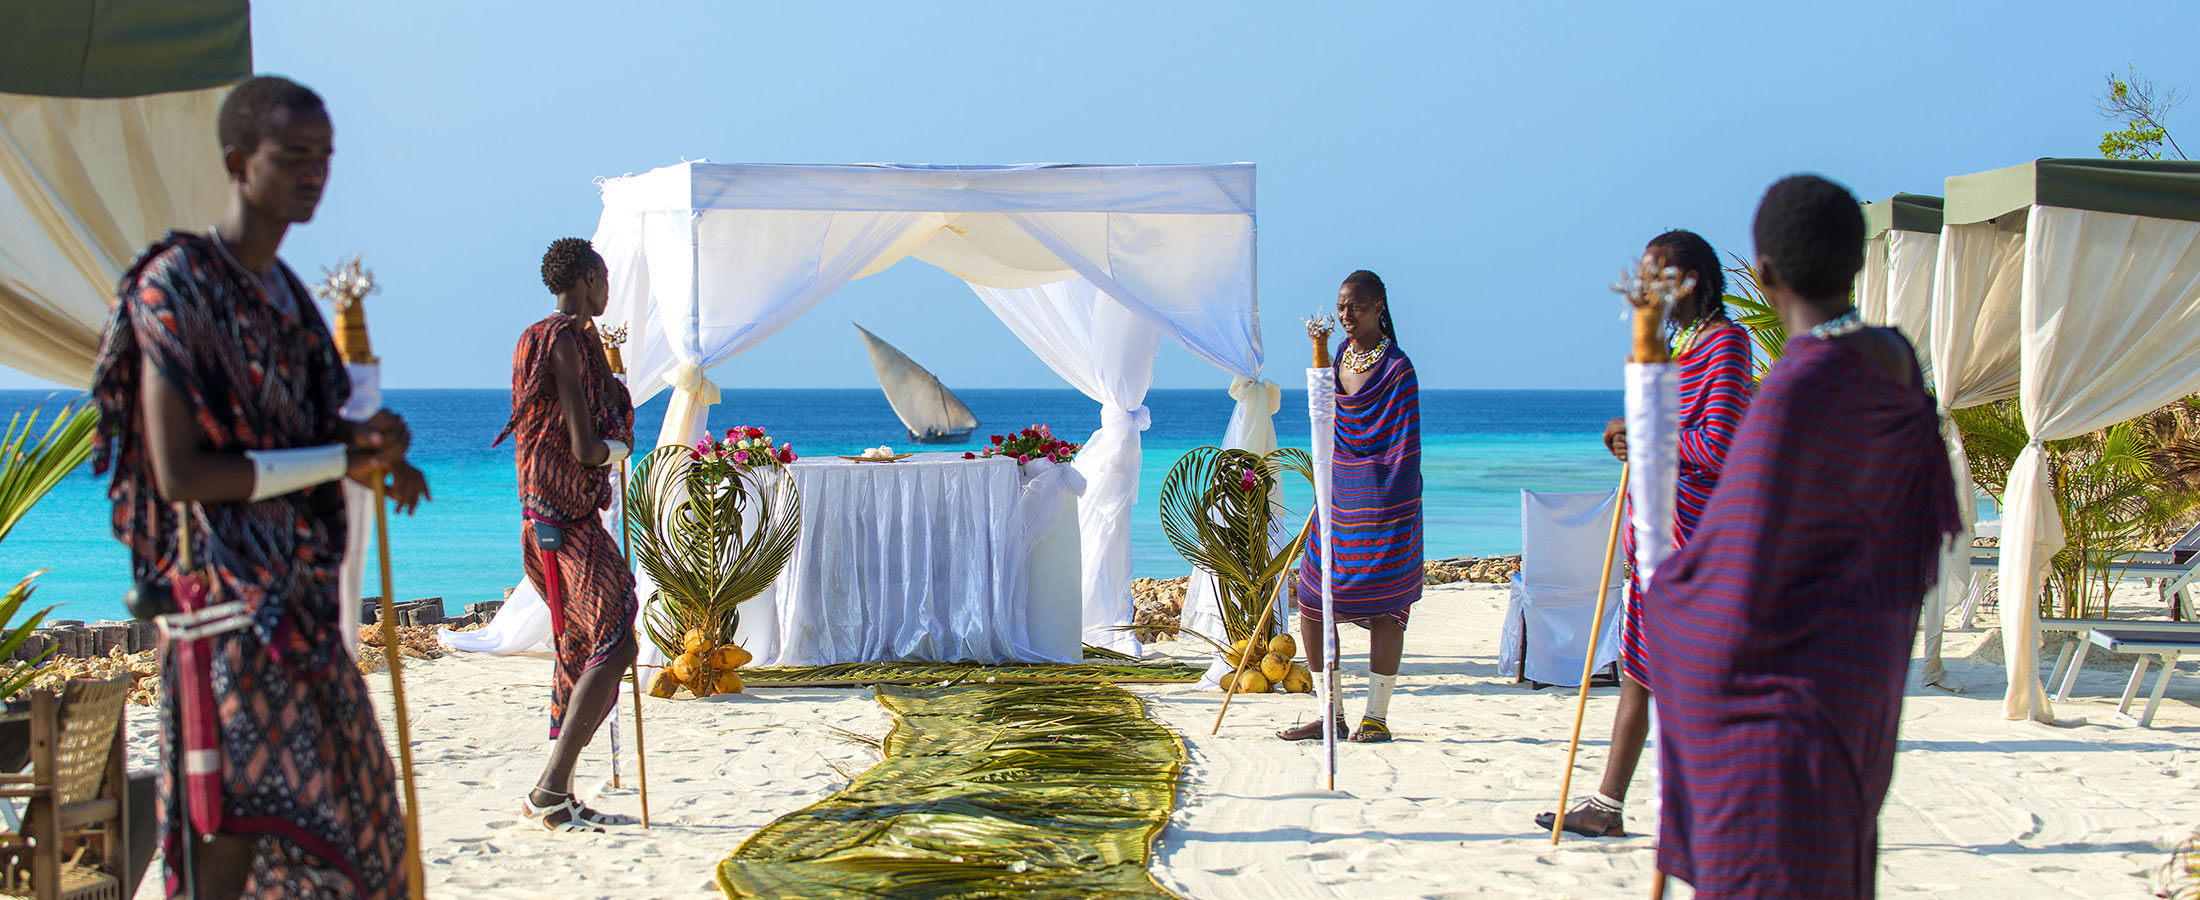 Matrimonio Bed Ocean : Weddings the indian ocean hotel diamonds hotels resorts